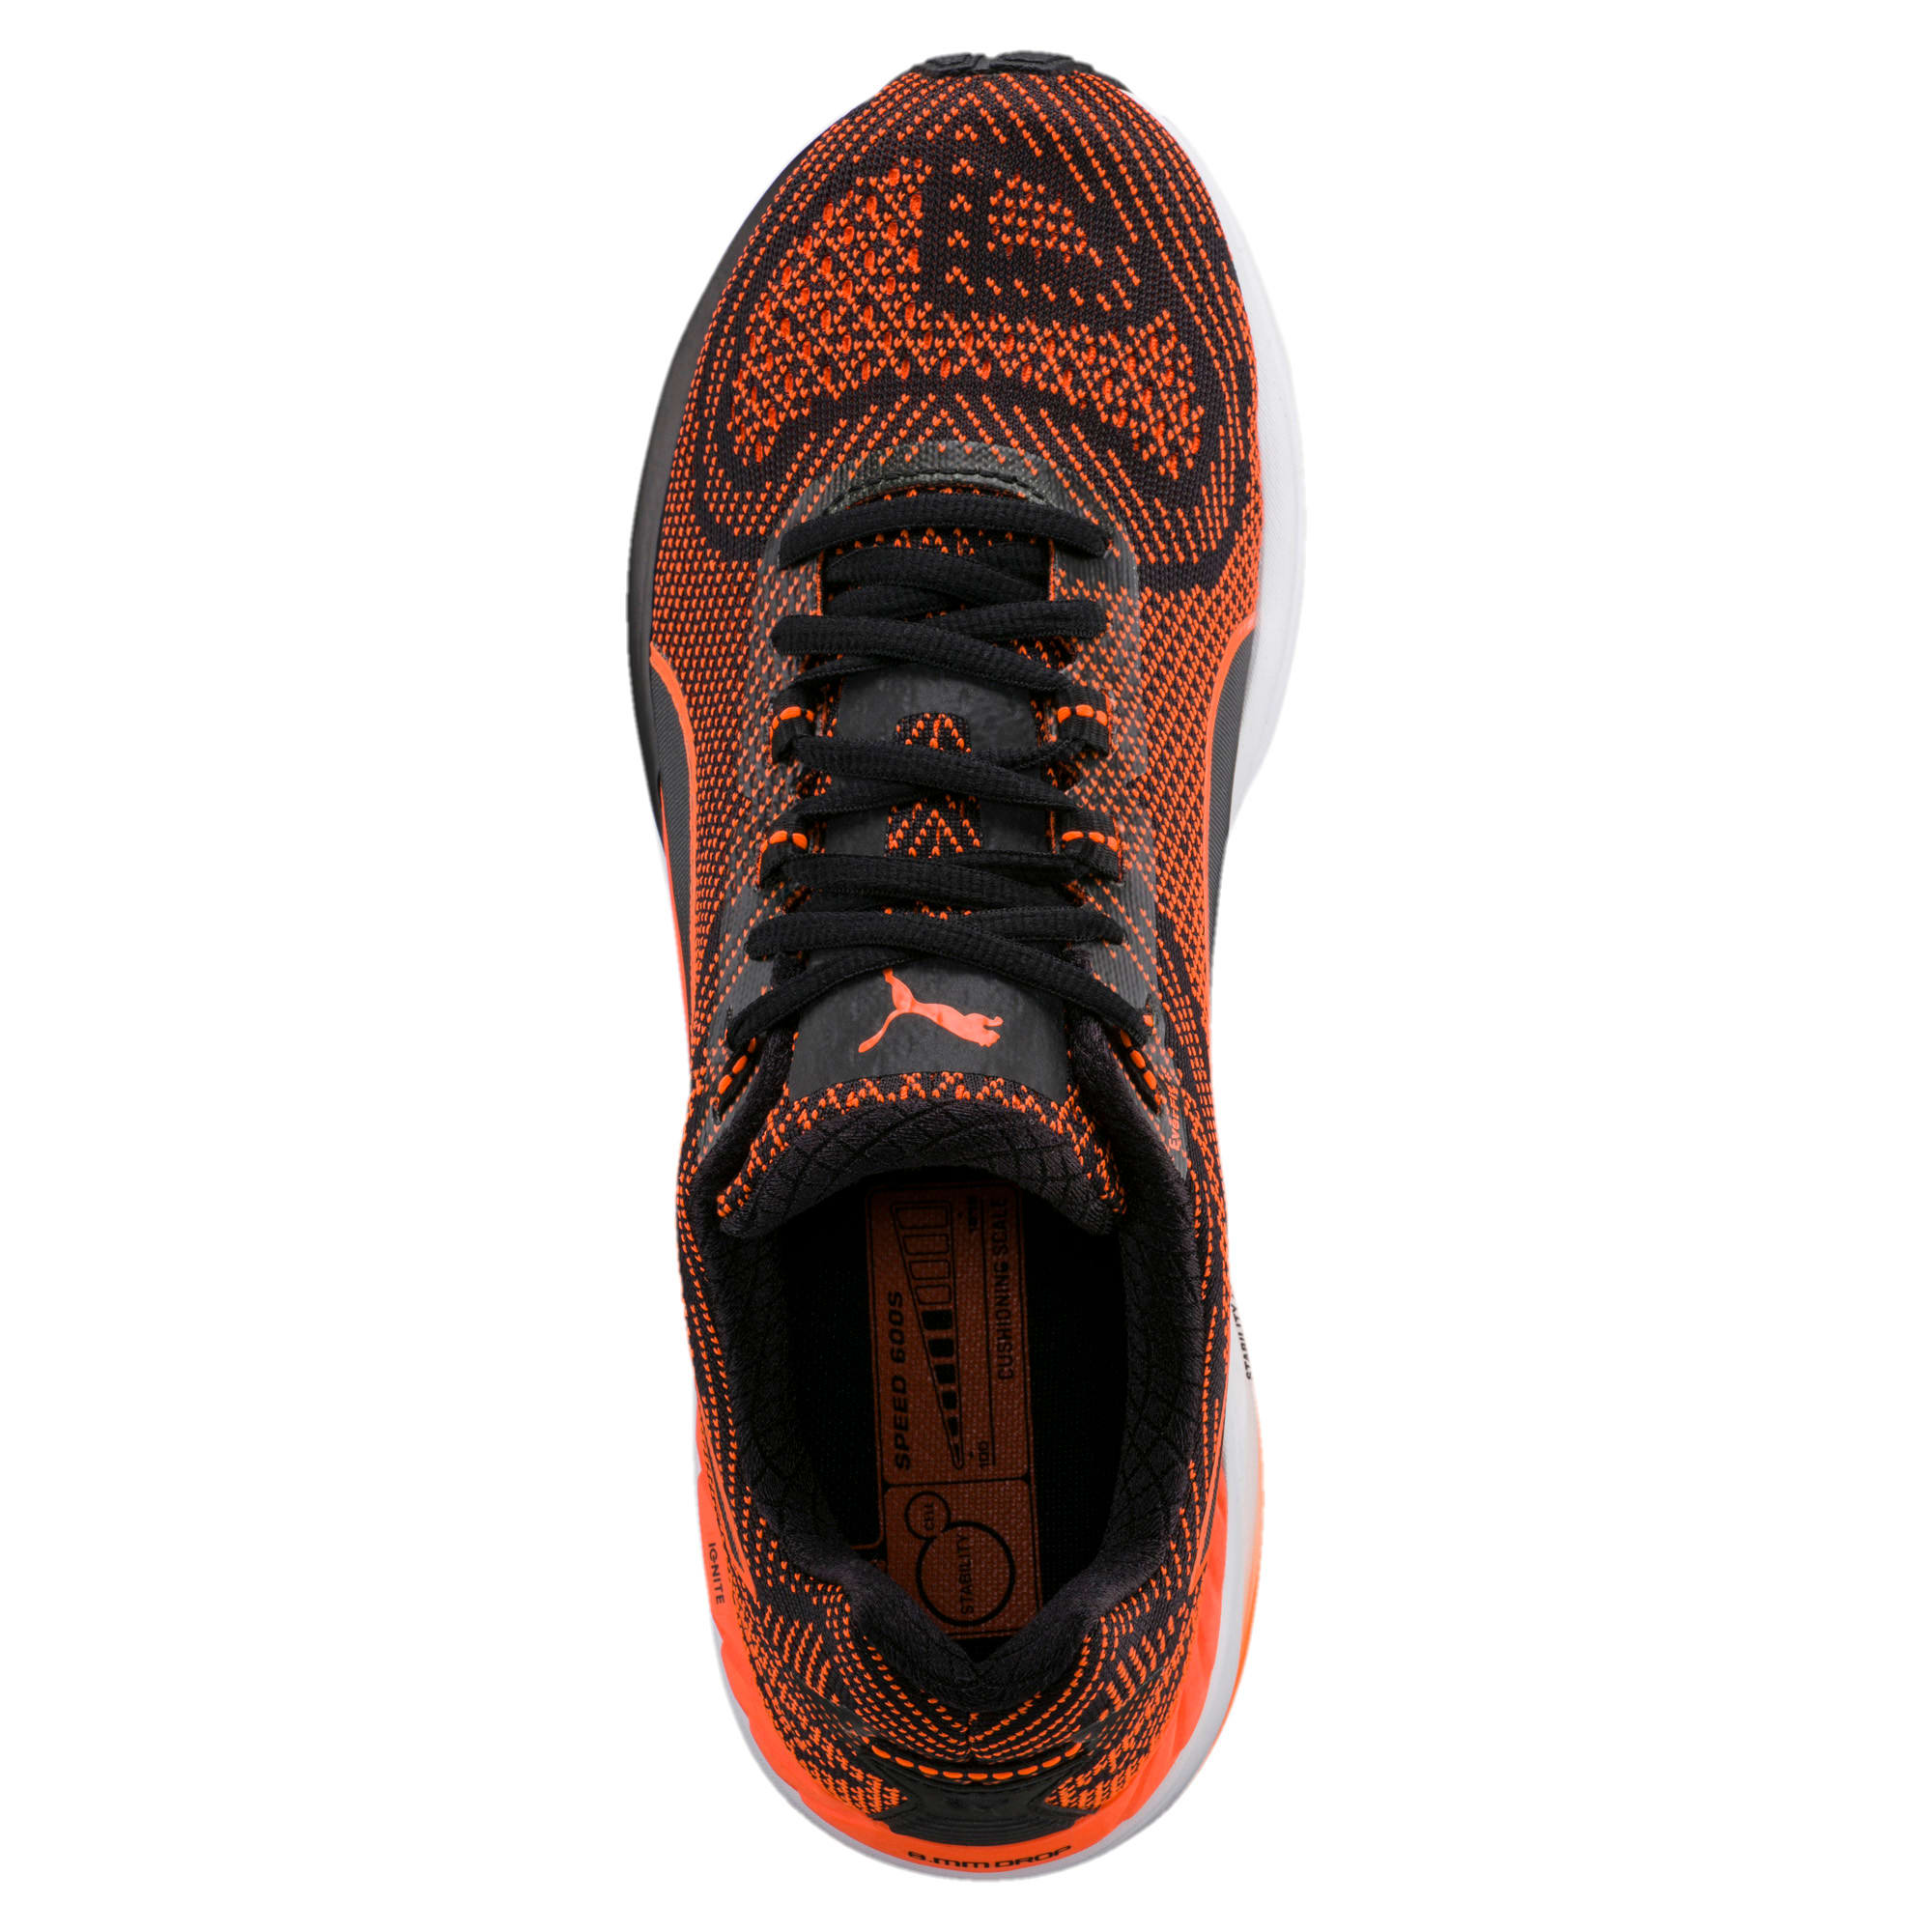 Thumbnail 5 of Speed 600 S IGNITE Men's Running Shoes, Puma Black-Shocking Orange, medium-IND